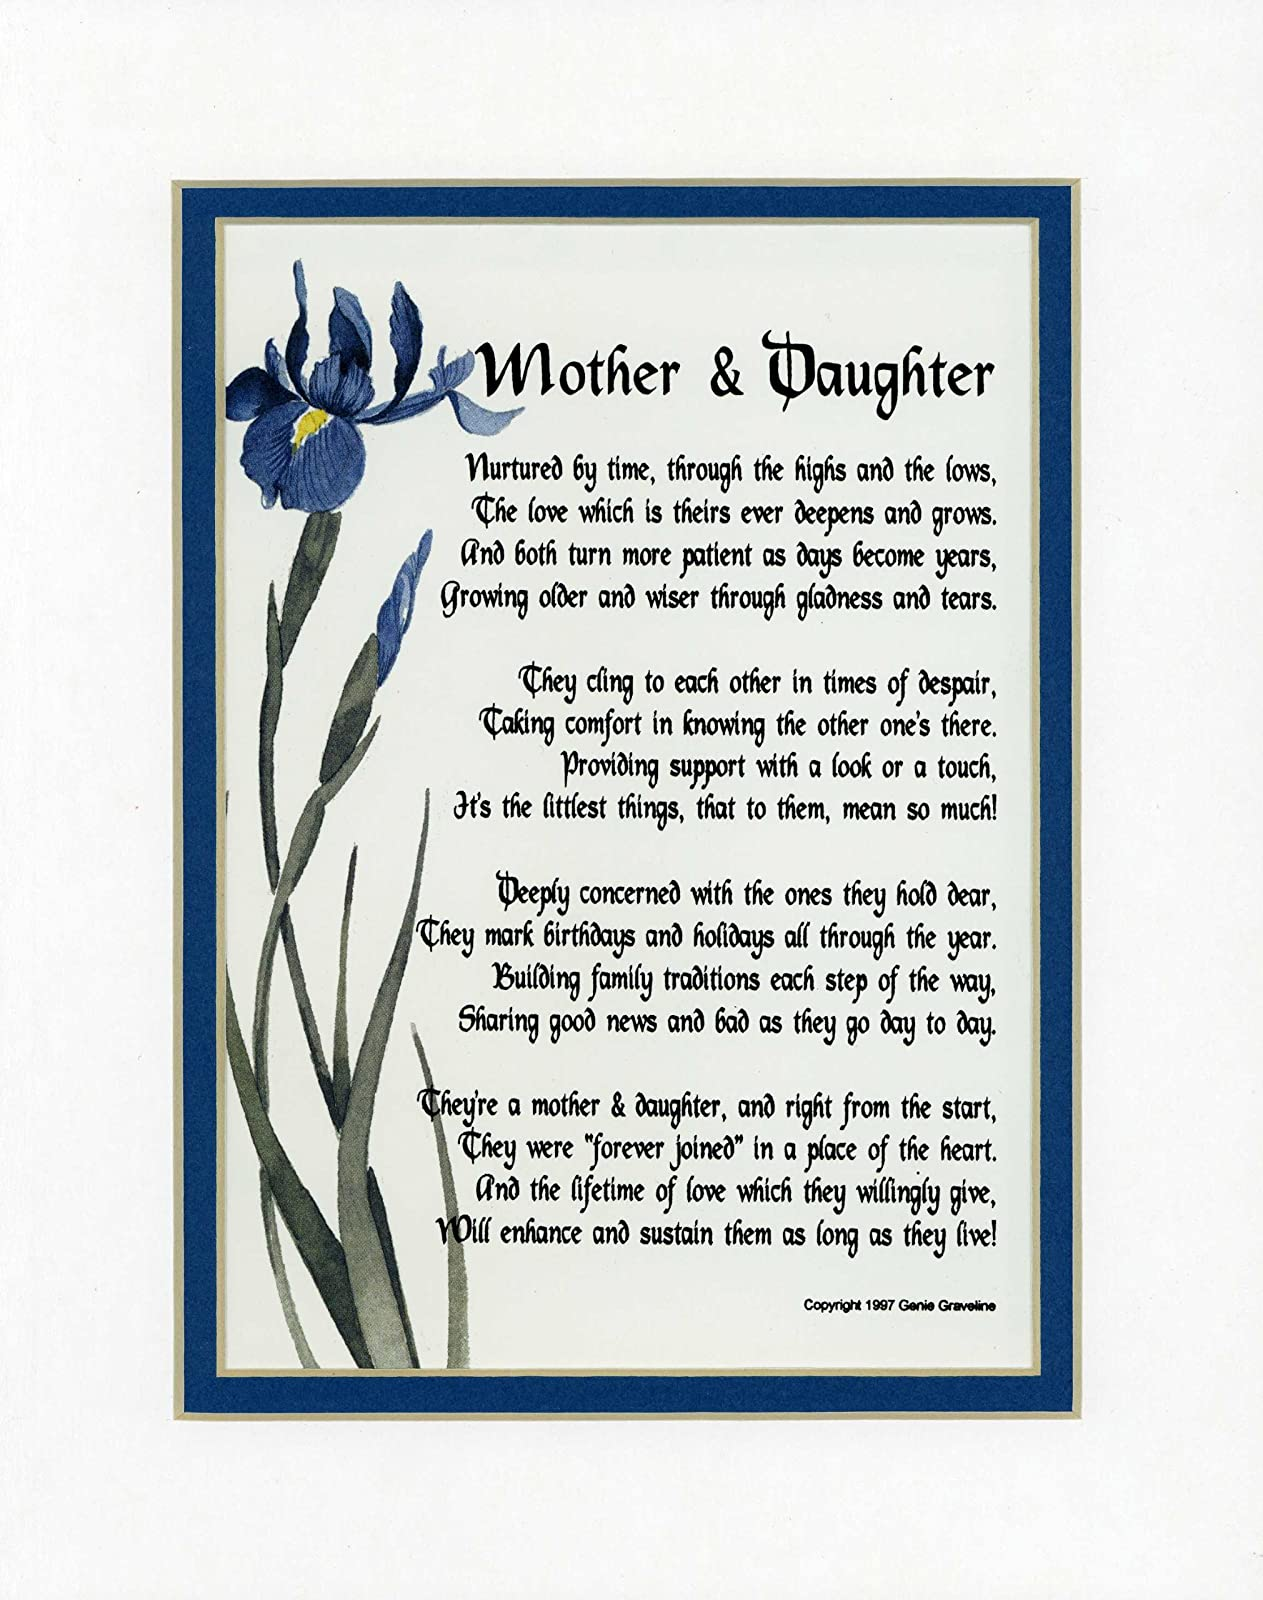 images of mother & daughter touching 8x10 poem wallpaper